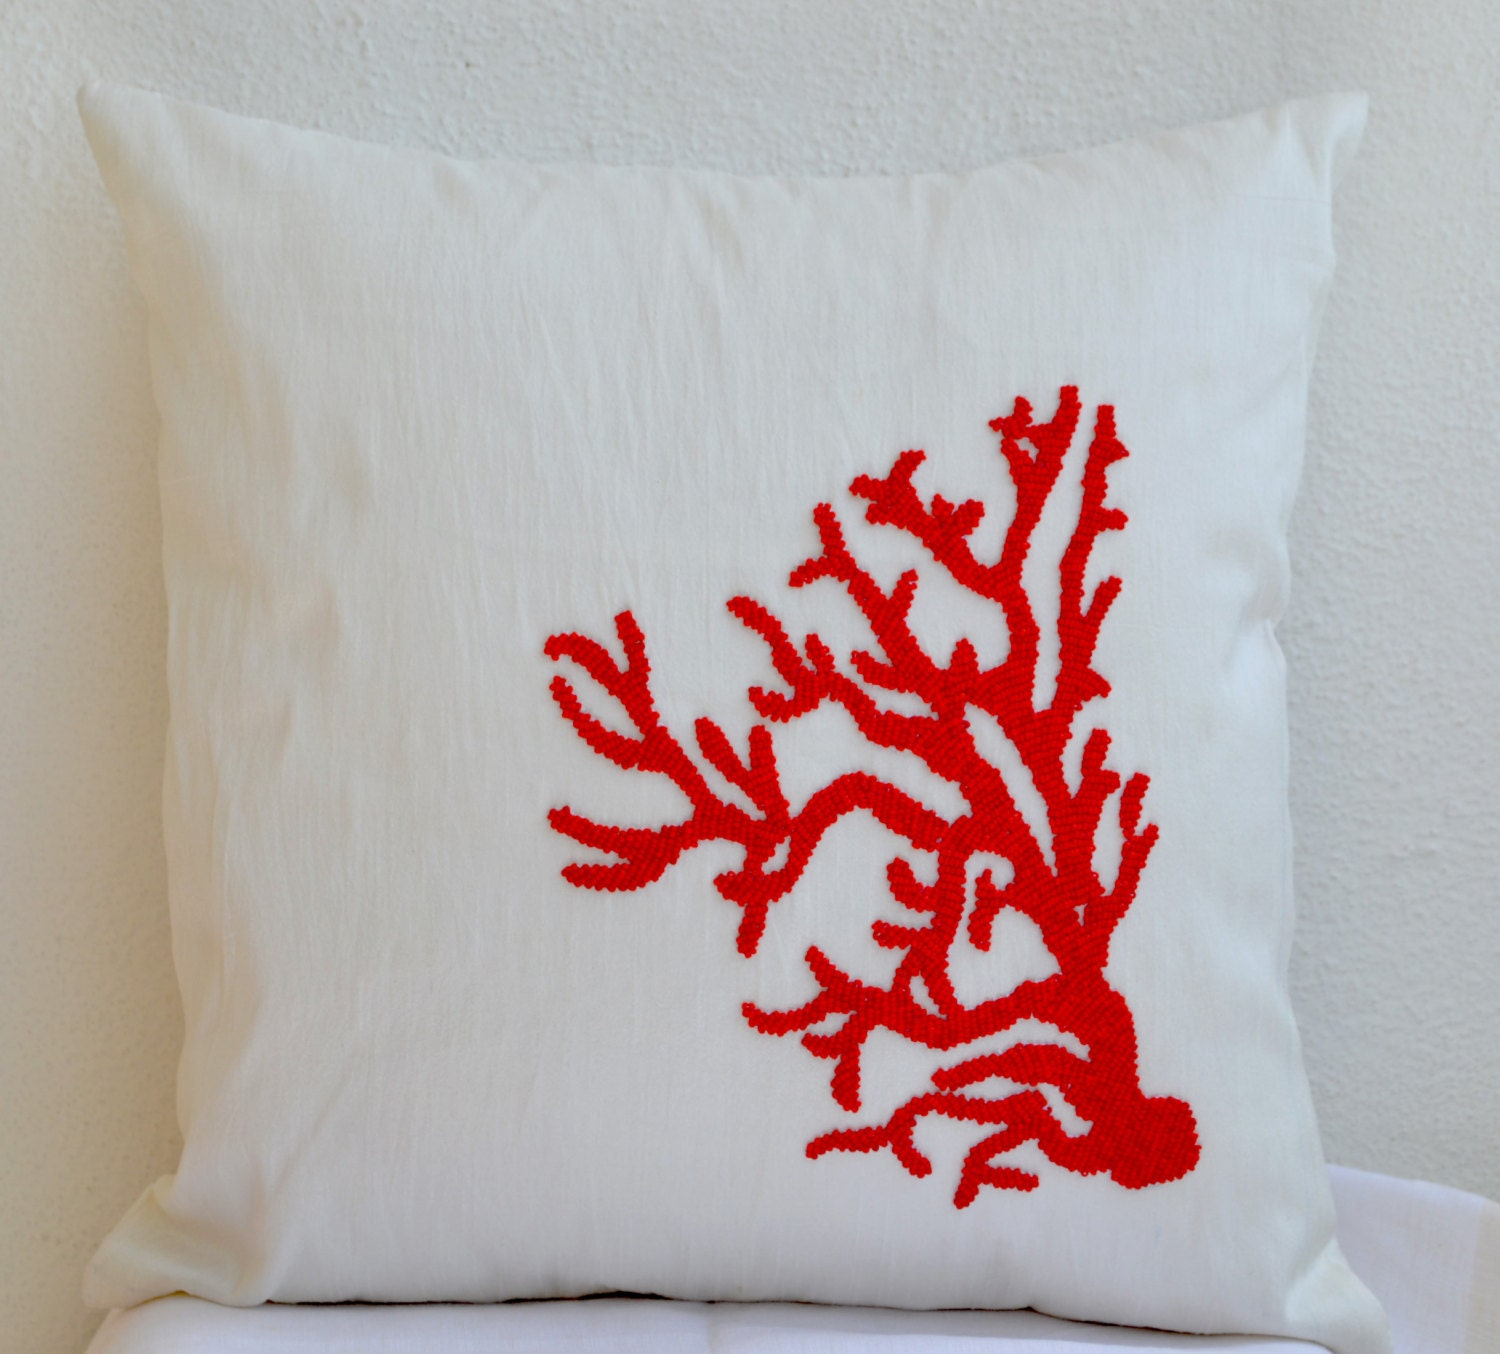 Red Coral Decorative Pillow : Coral Pillow Red White Pillow Decorative Throw Pillow Cover